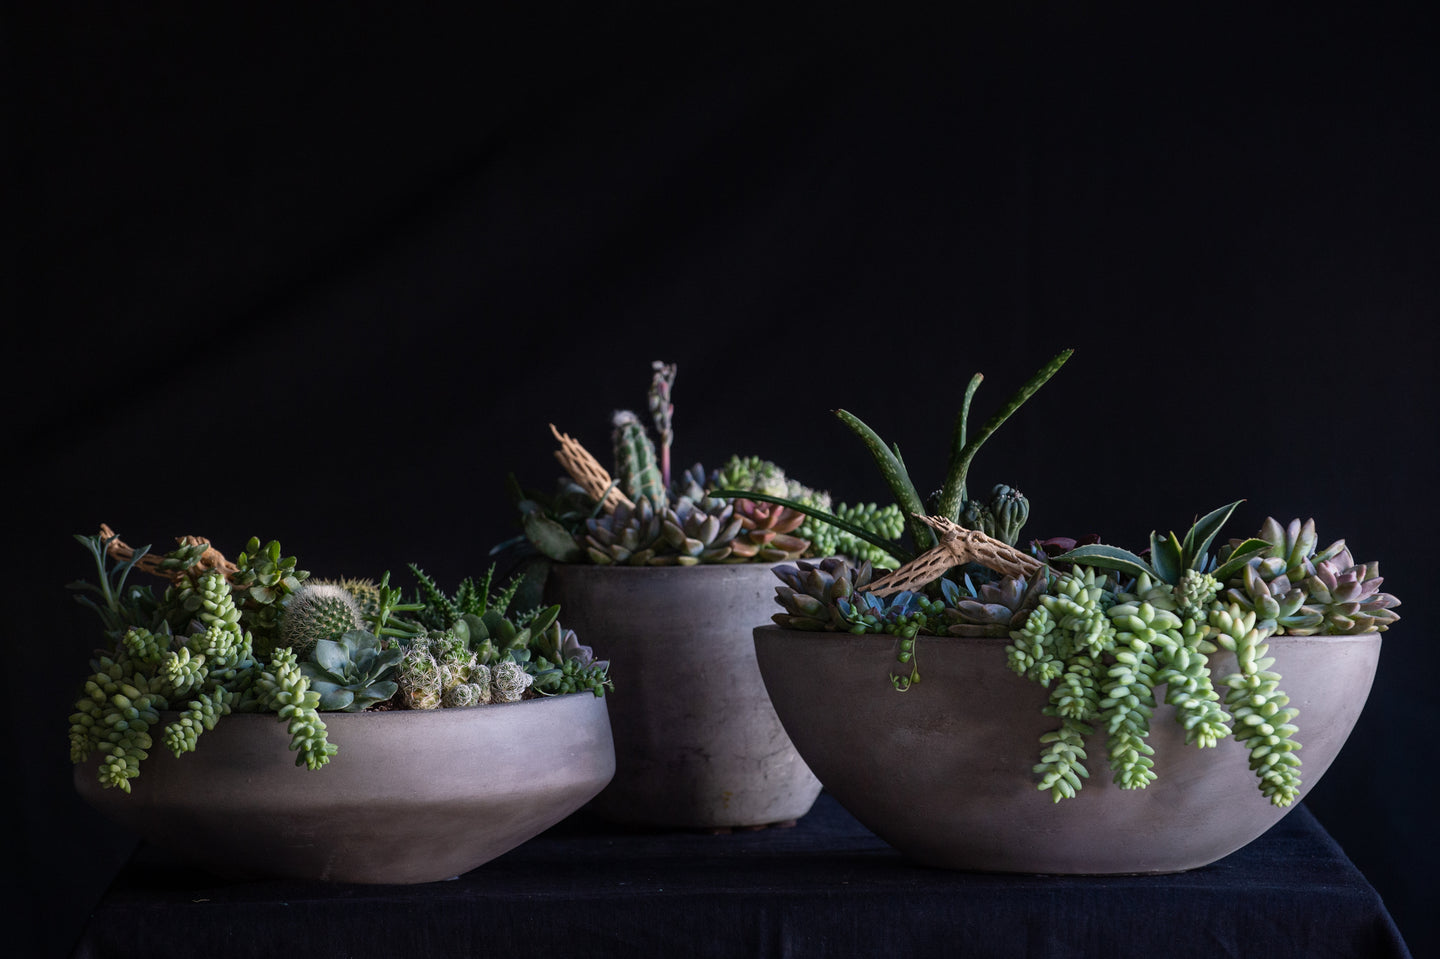 Arizona inspired living plant gardens available for next day delivery